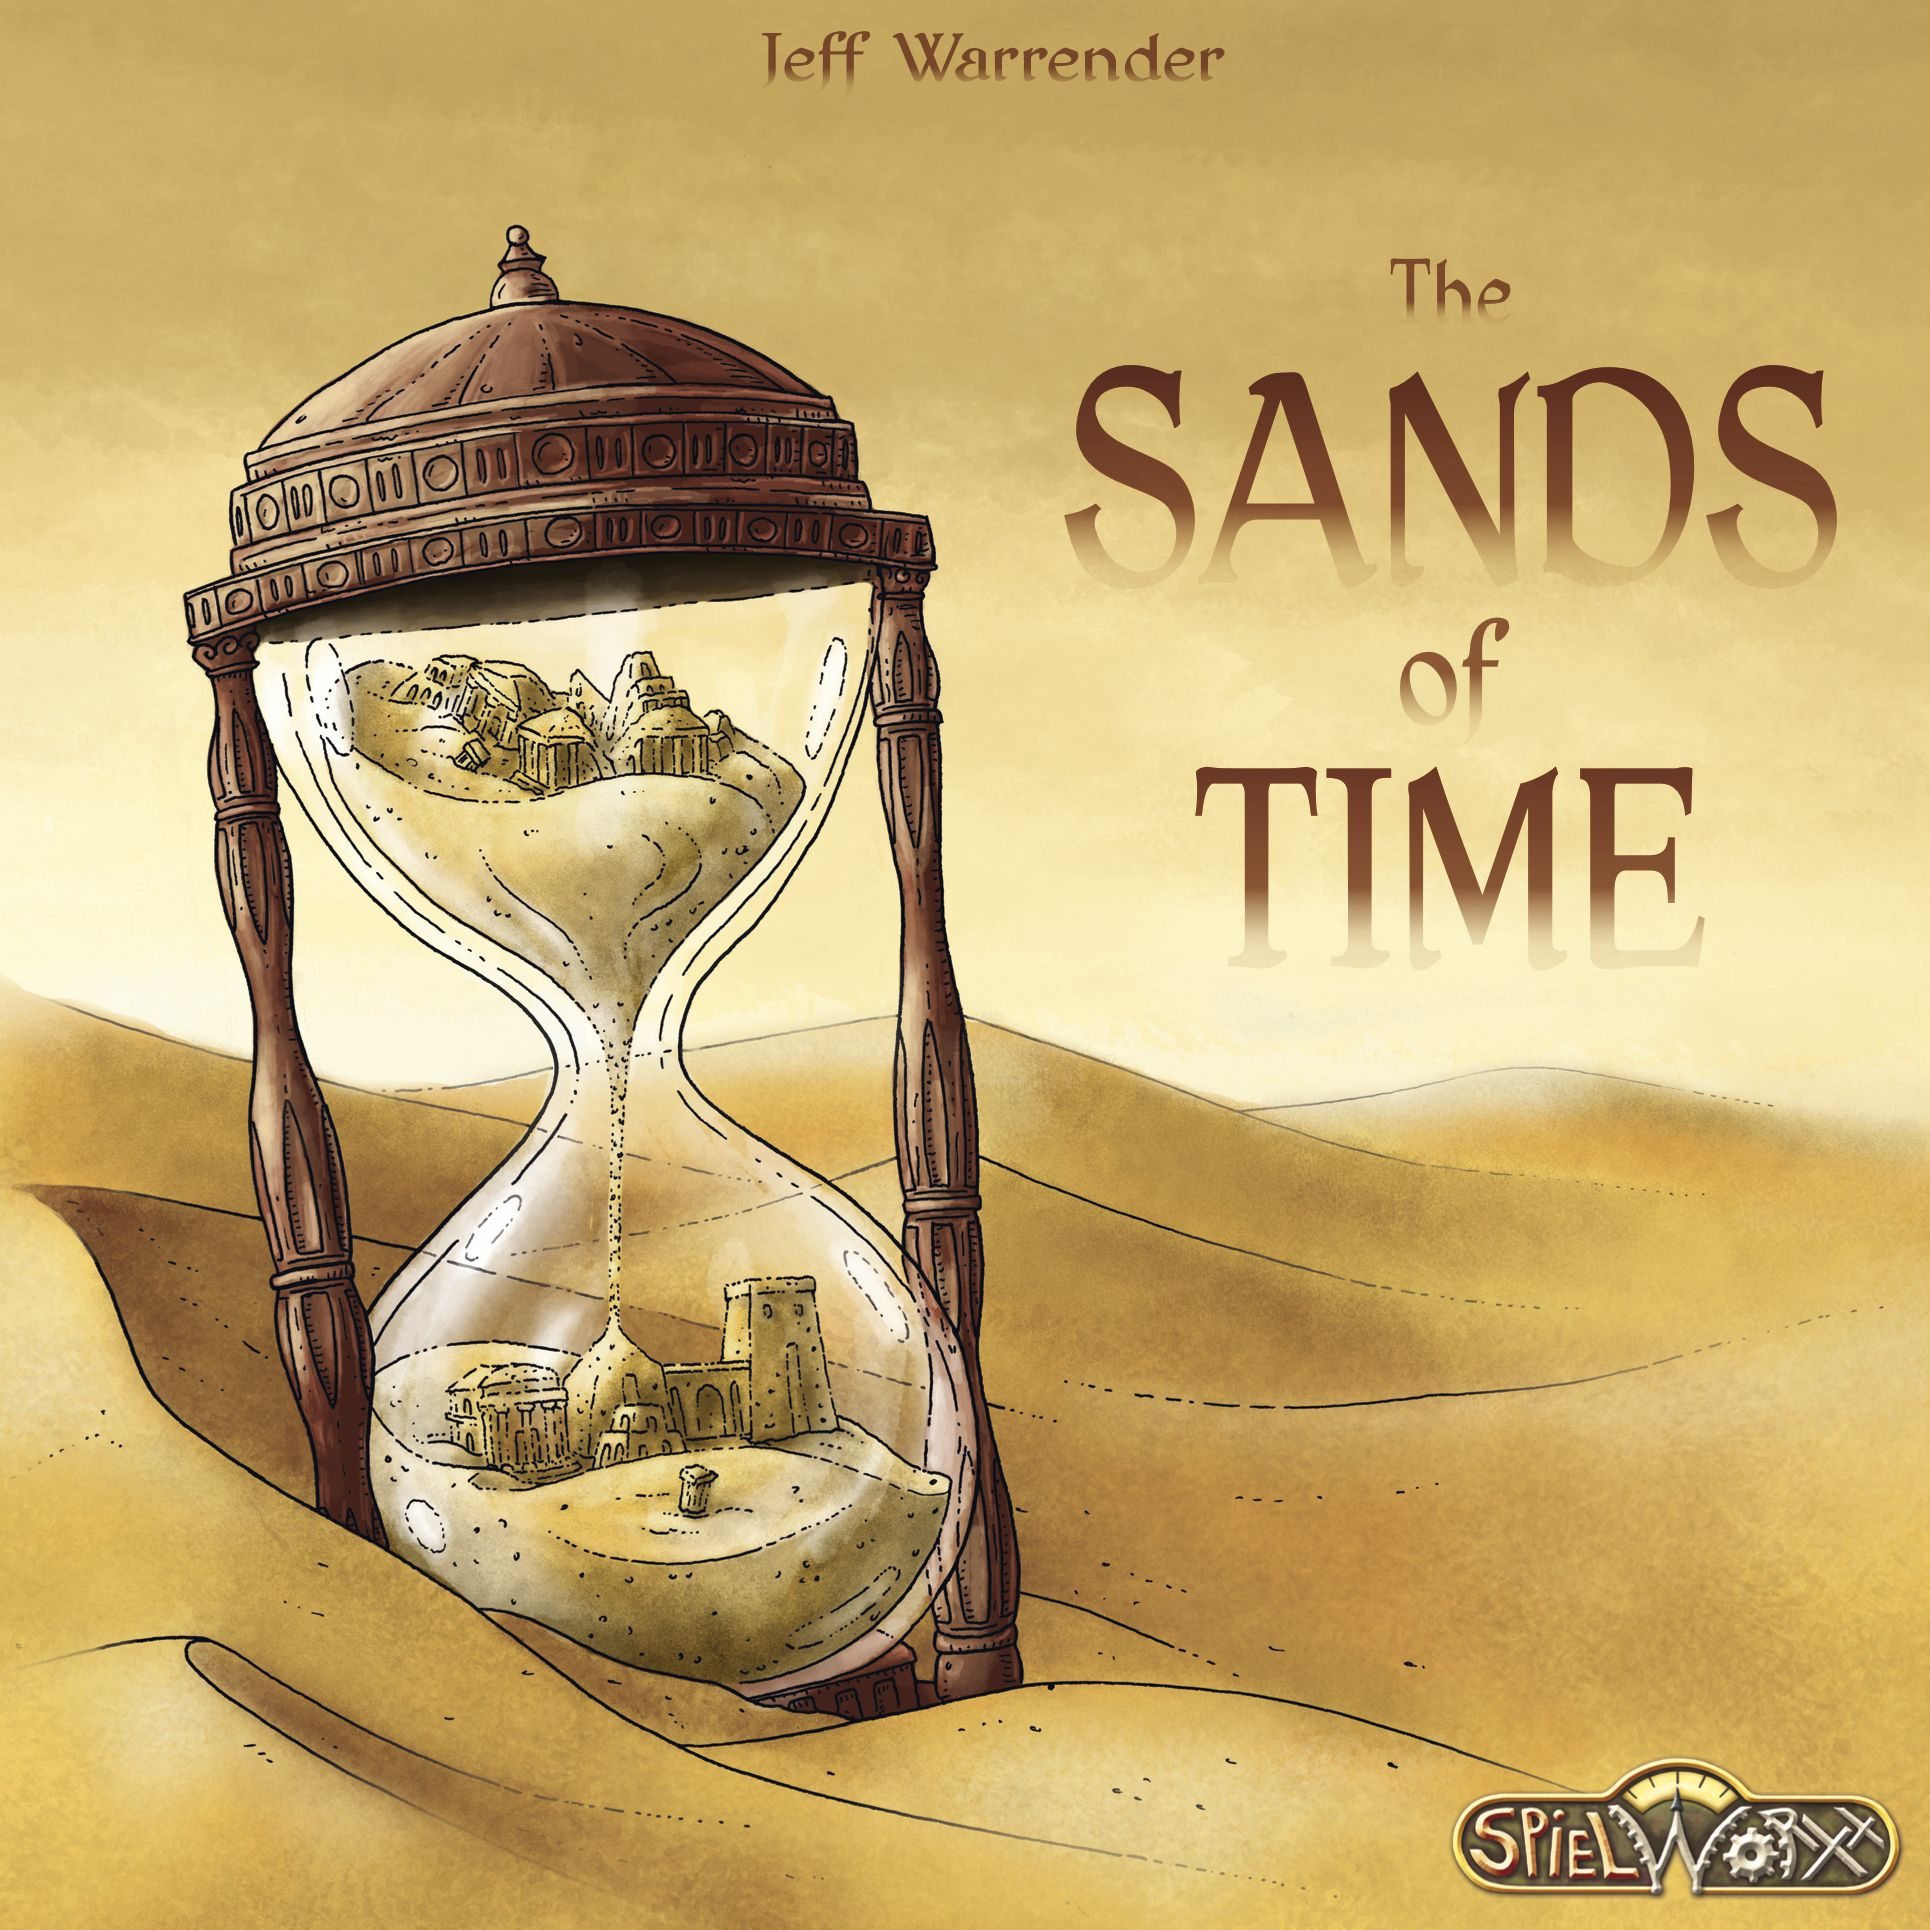 The Sands of Time